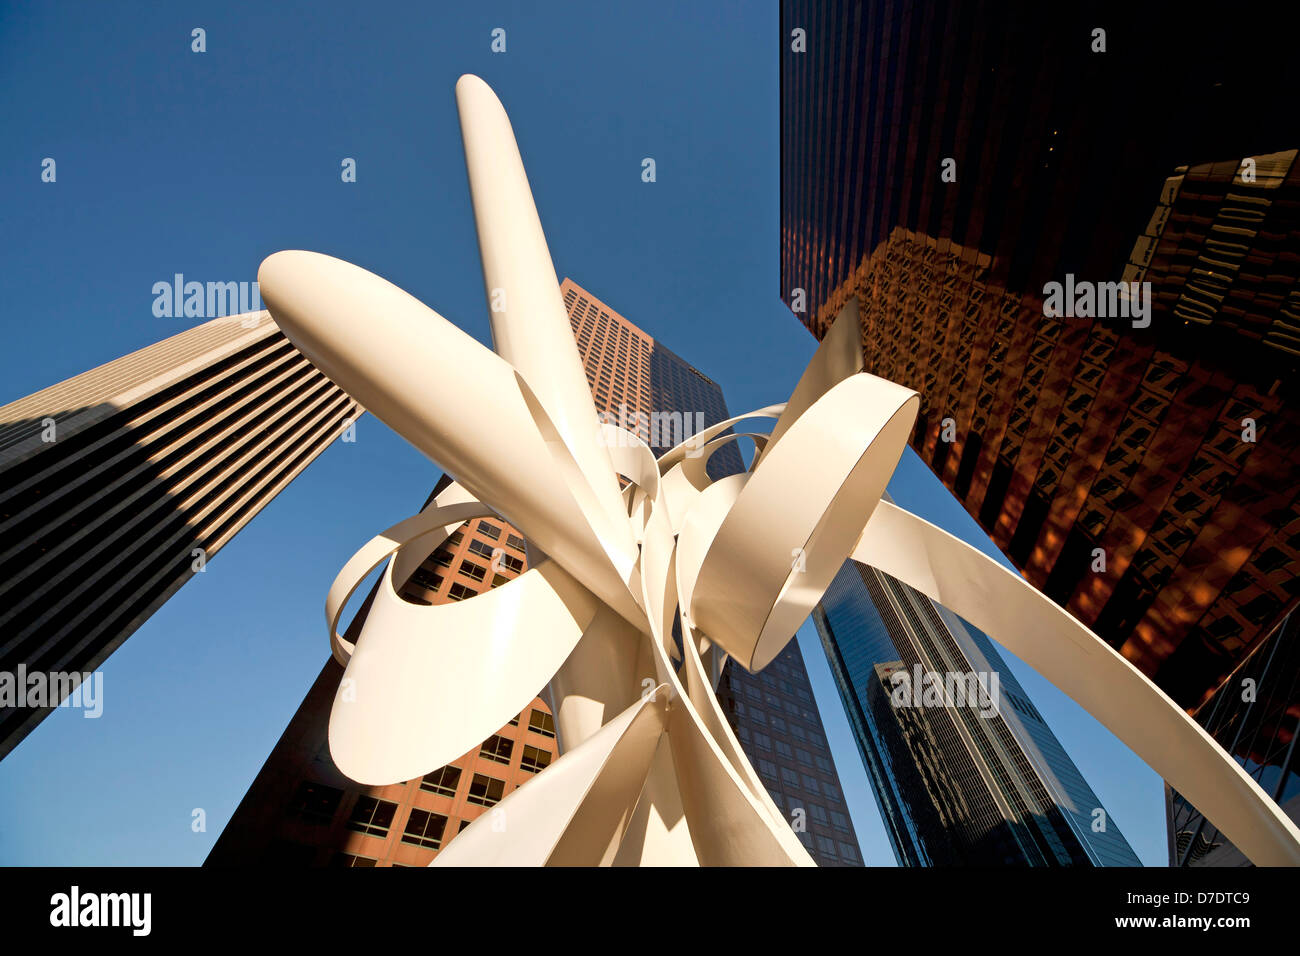 Worm's-eye view of Downtown Los Angeles skyscrapers and sculptur - Stock Image